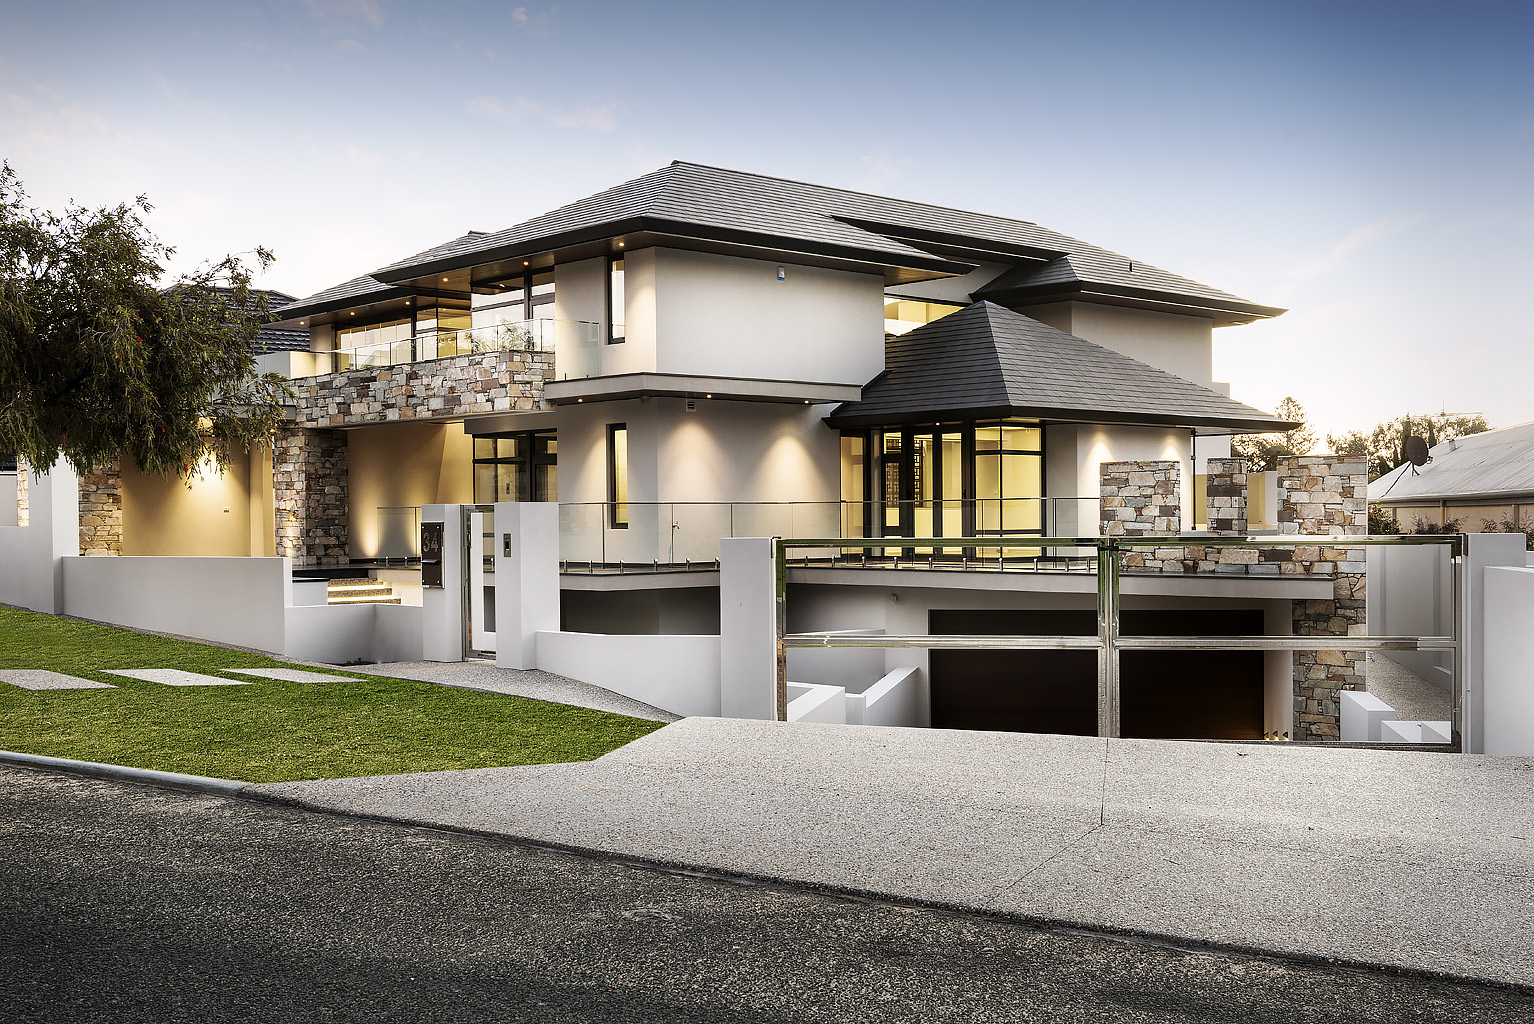 Luxury custom homes perth luxury home city beach Custom luxury home design ideas